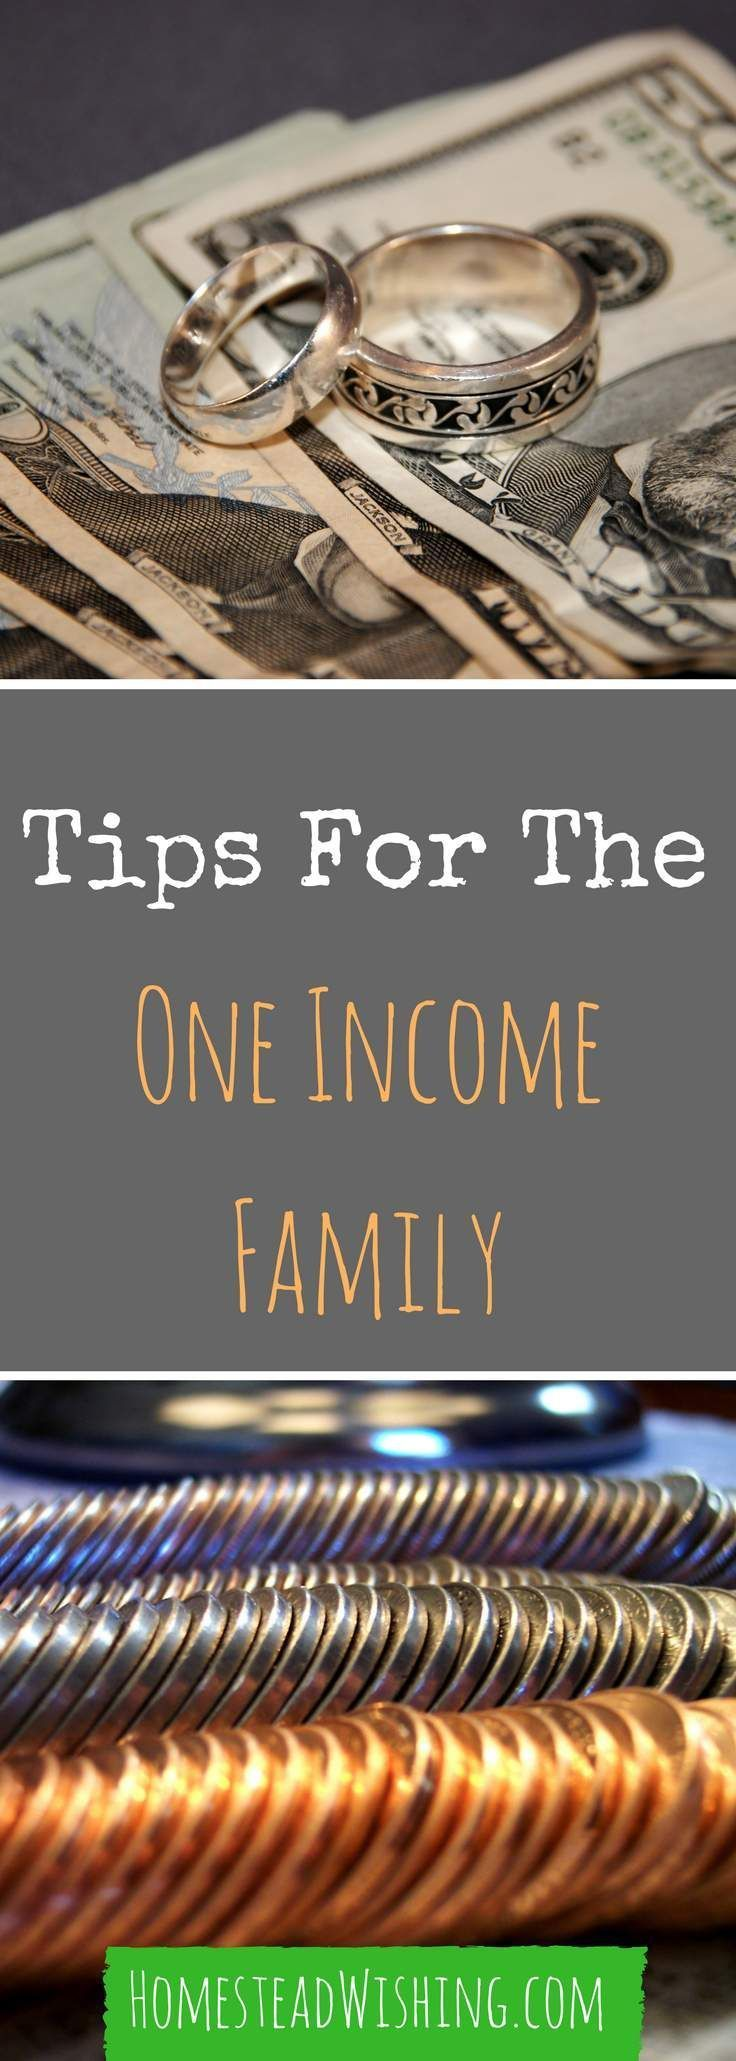 How to get by on one income. Having one income can be very hard on a family. Here are some tips I have learned from the many years of living that way. | http://homesteadwishing.com/tips-for-the-one-income-family/ | http://homesteadwishing.com/tips-for-the